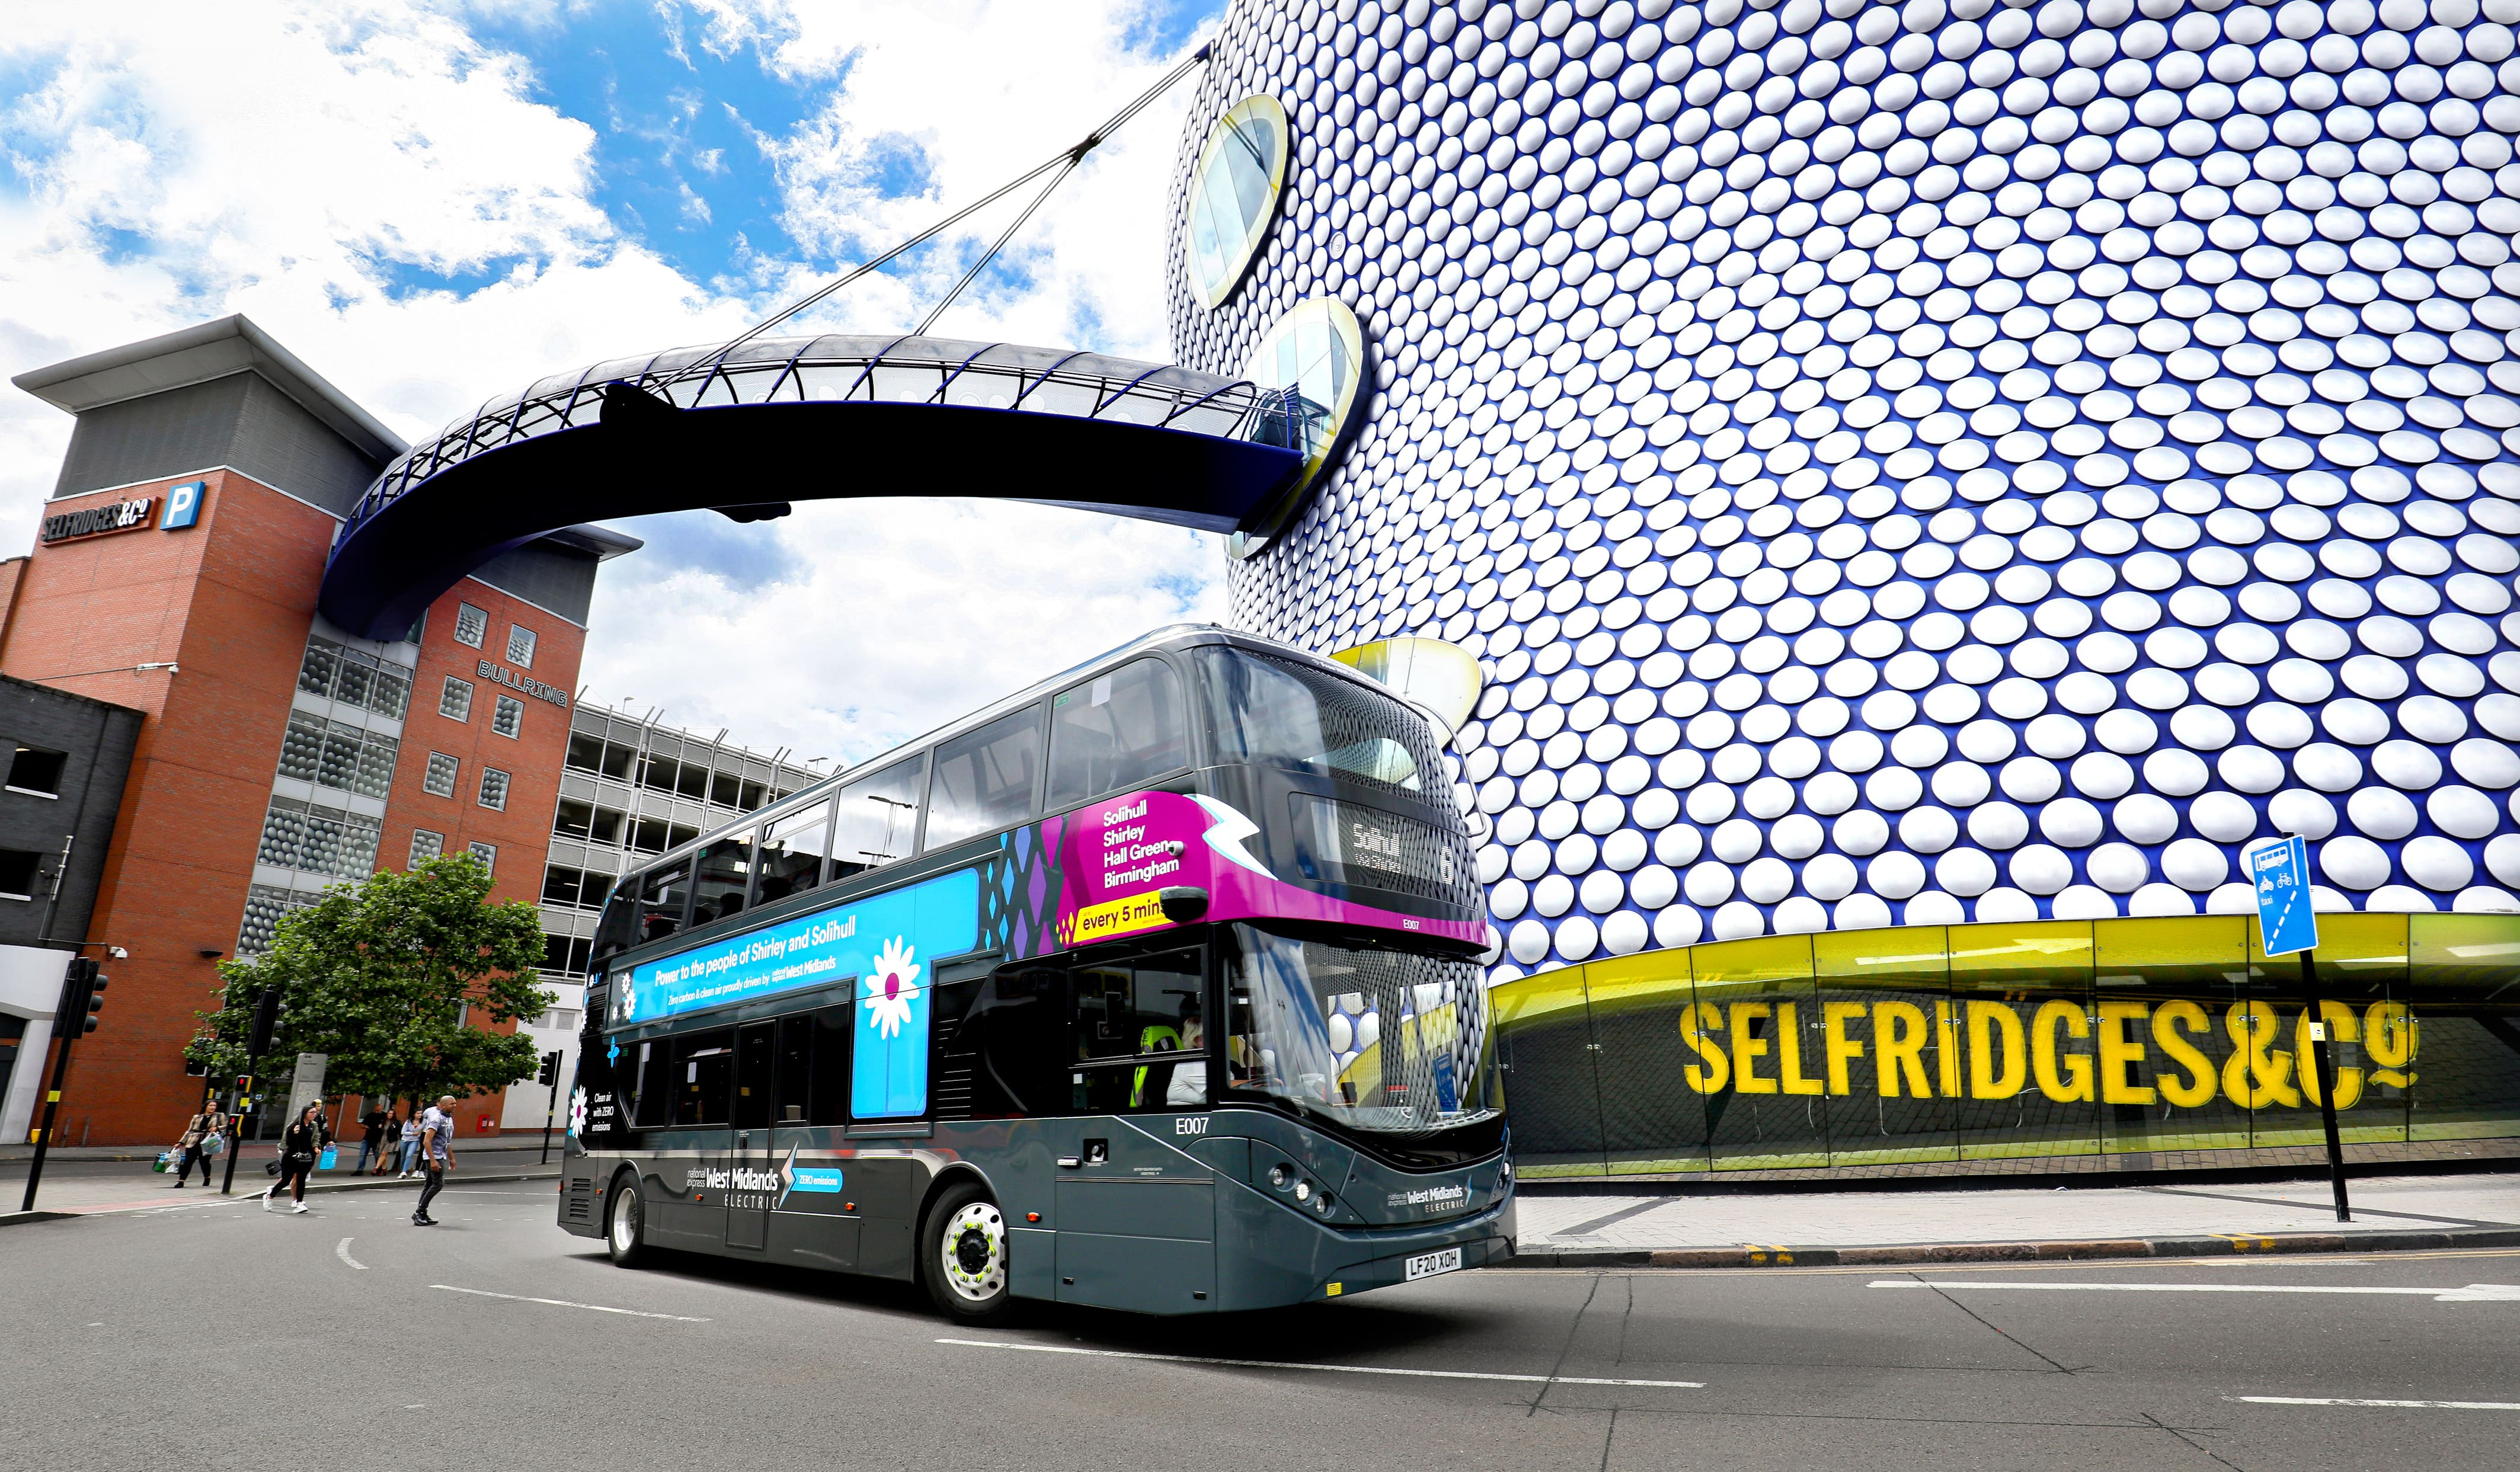 Electric bus outside Selfridges, Birmingham